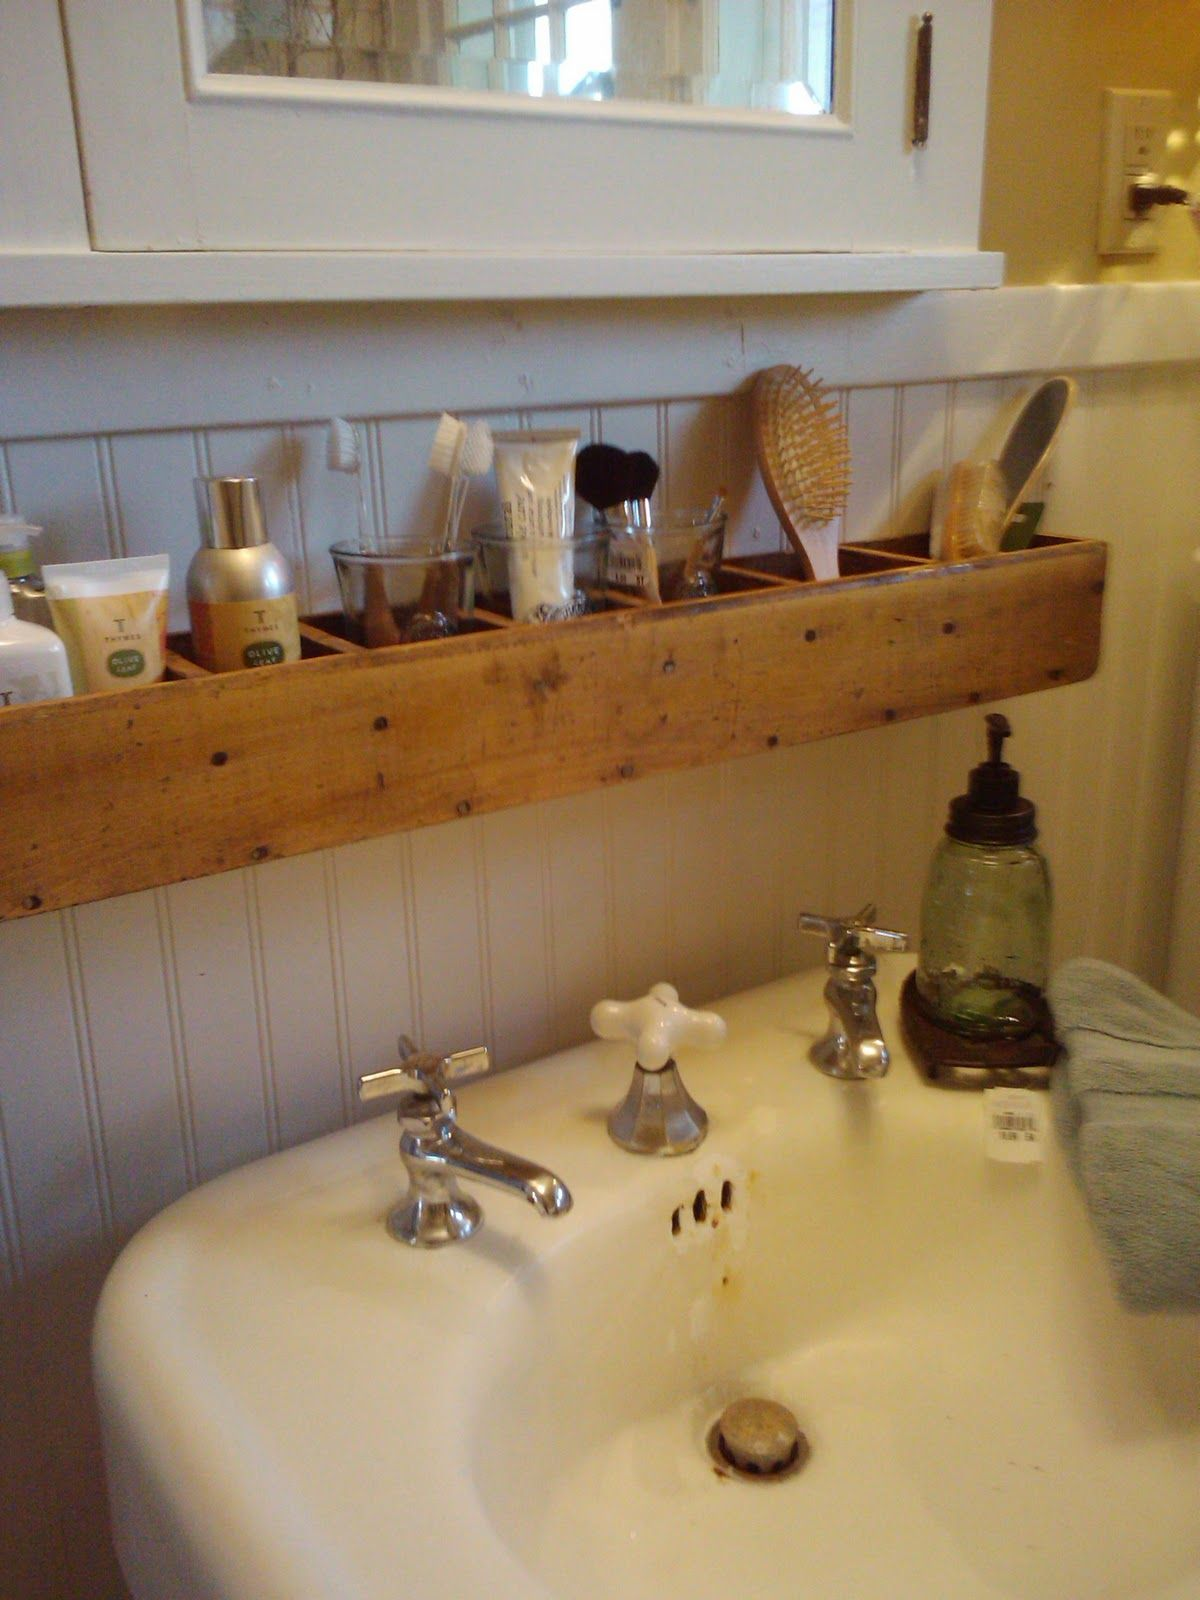 Bathroom Cubbies Over Sink Made From Pallets Cleaning Organizing